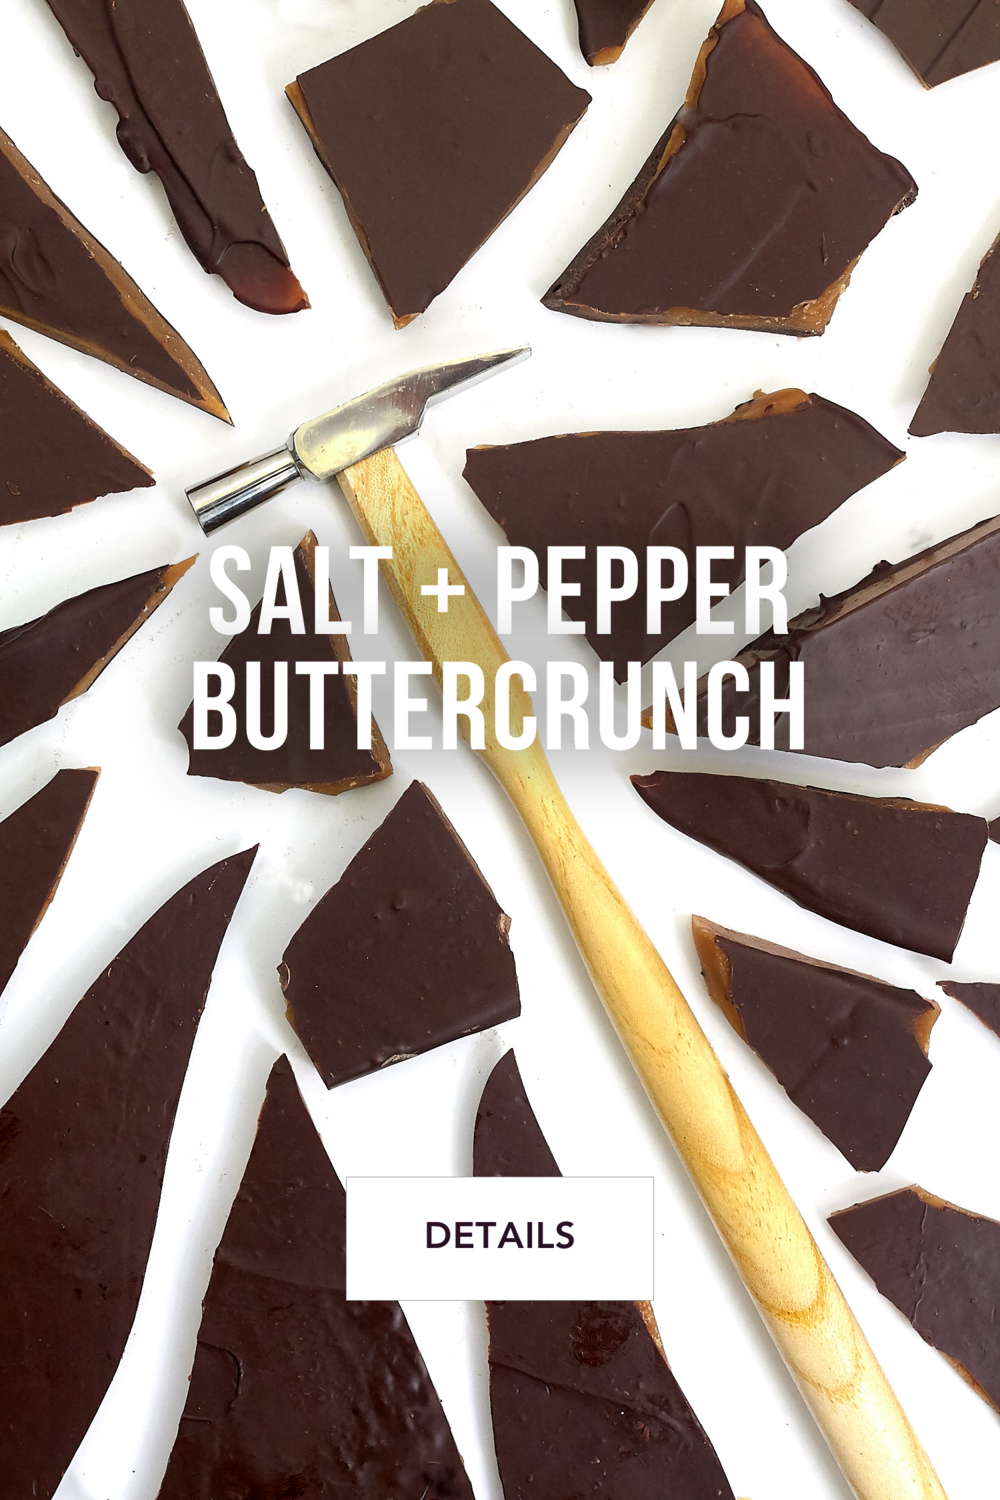 Salt + Pepper Buttercrunch